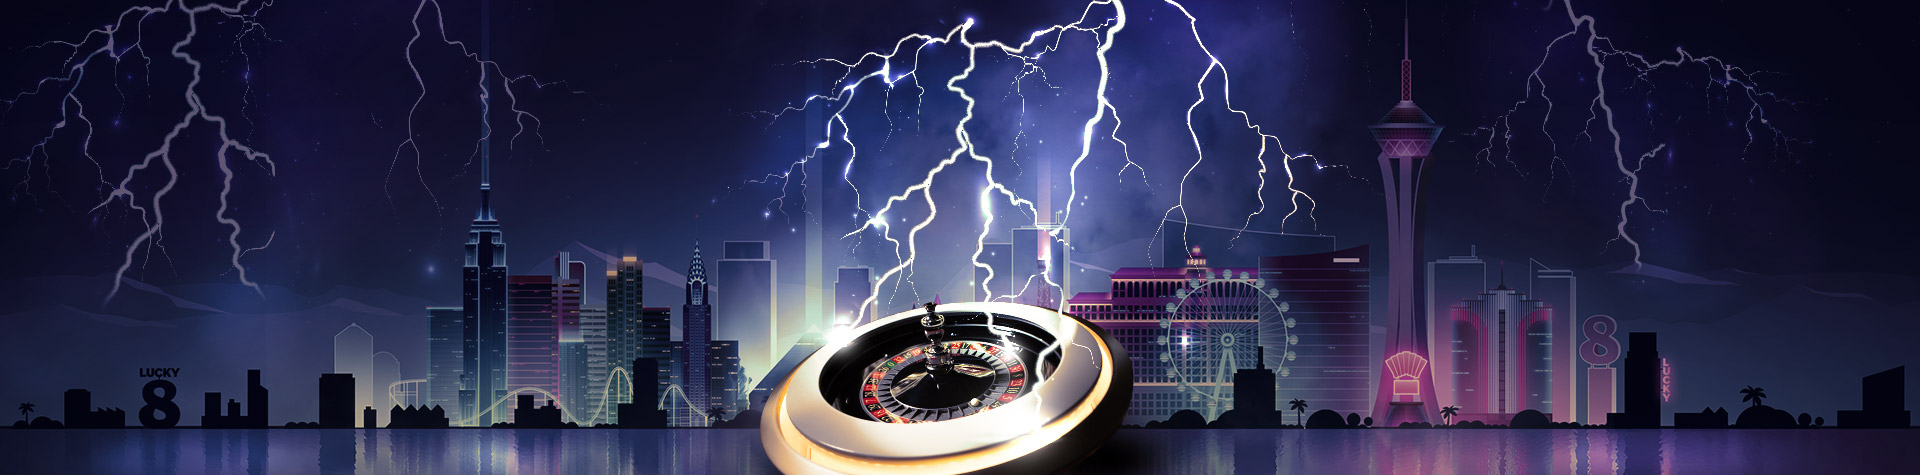 GameLobby TableGames LightningRoulette BG 1920x475